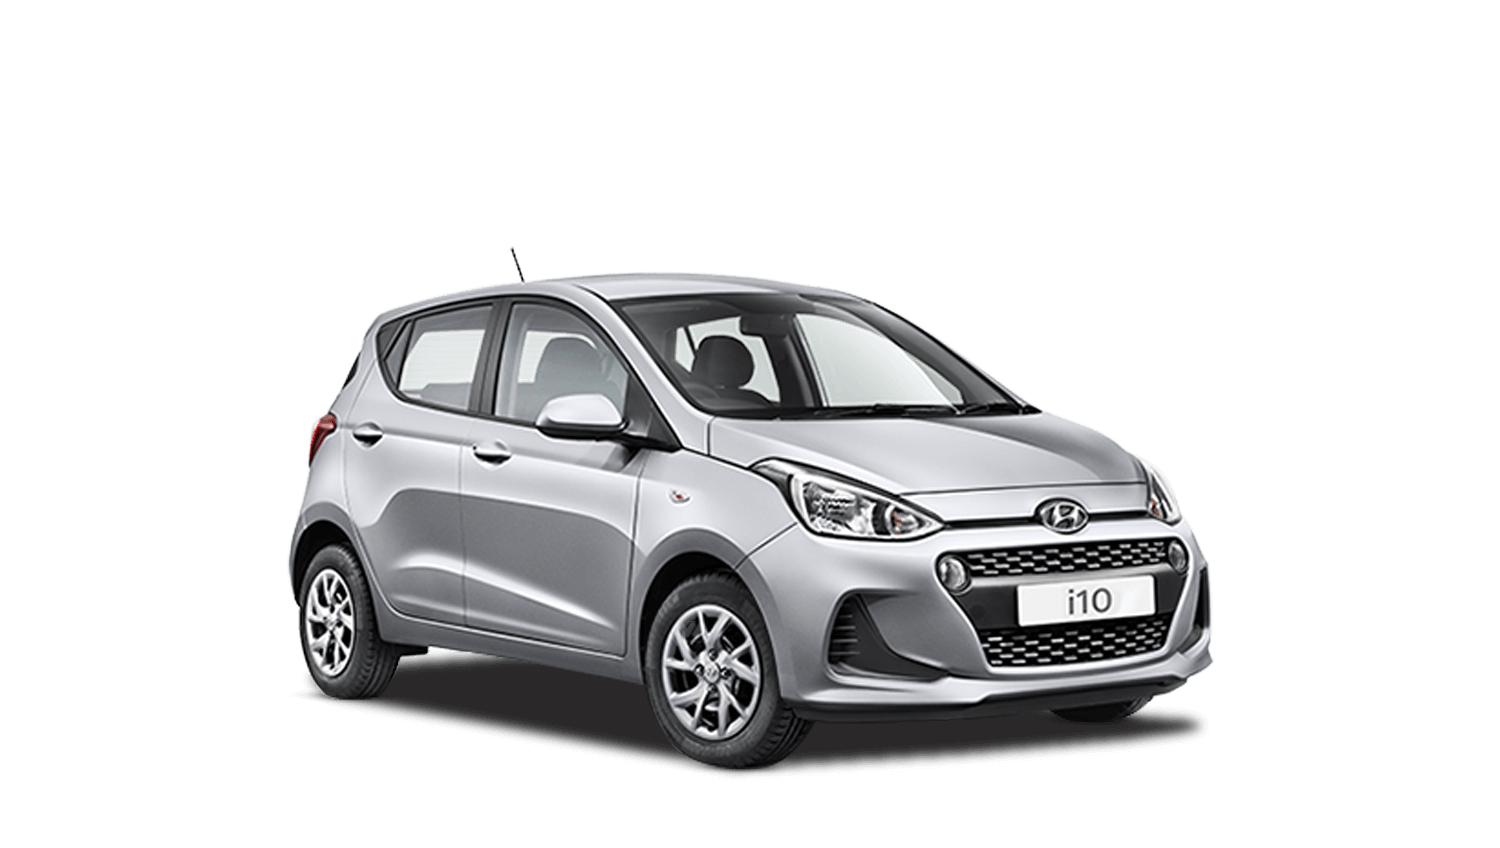 Sleek Silver Hyundai i10